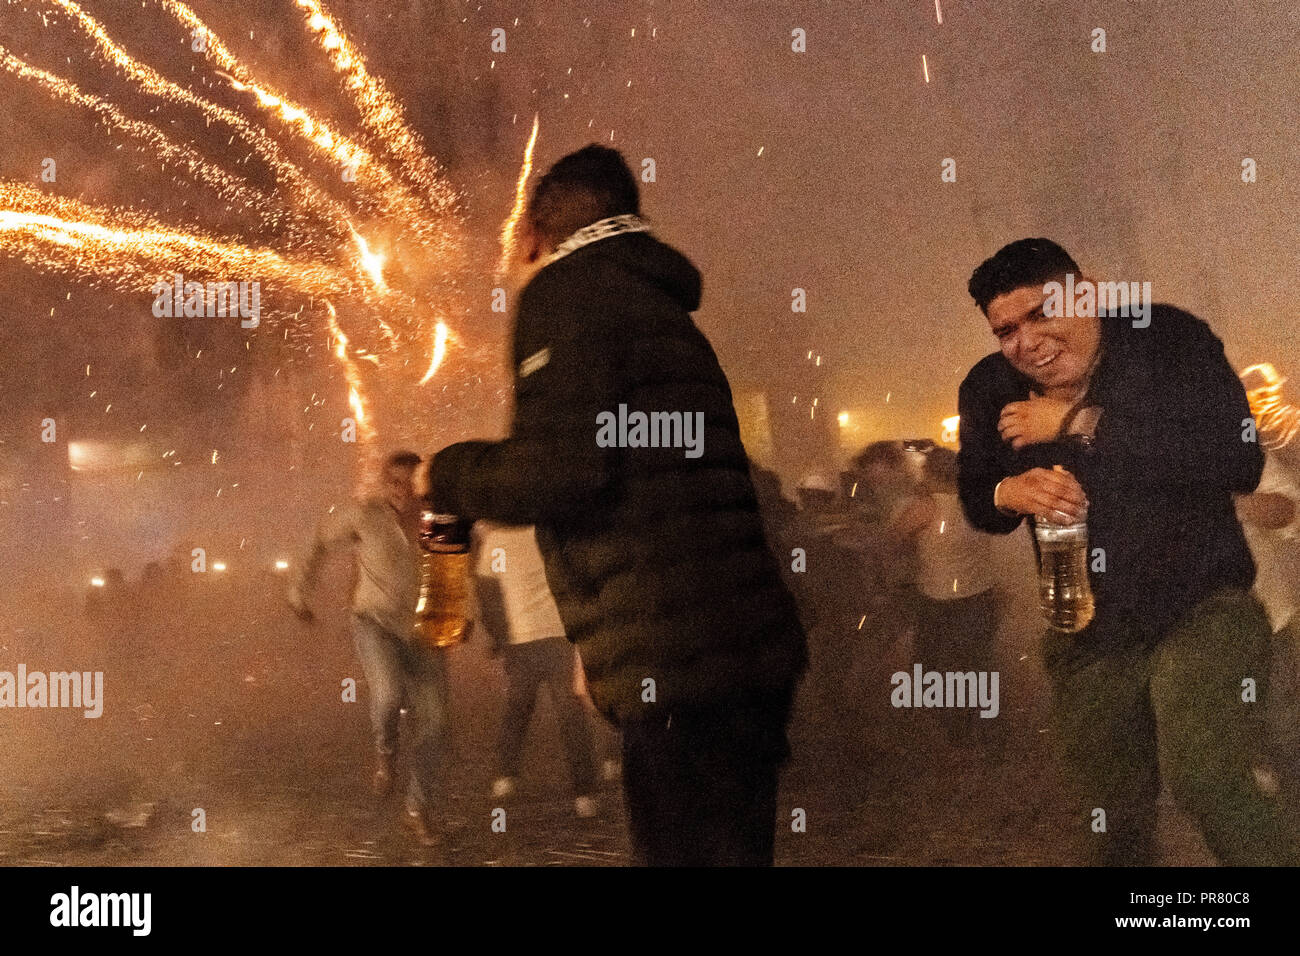 San Miguel de Allende, Mexico. 29th Sept 2018. Mexican men carrying bottles of tequila scramble as they are pelted by pyrotechnic rockets during the Alborada festival September 29, 2018 in San Miguel de Allende, Mexico. The unusual festival celebrates the cities patron saint with a two hour-long firework battle at 4am representing the struggle between Saint Michael and Lucifer. Credit: Planetpix/Alamy Live News - Stock Image